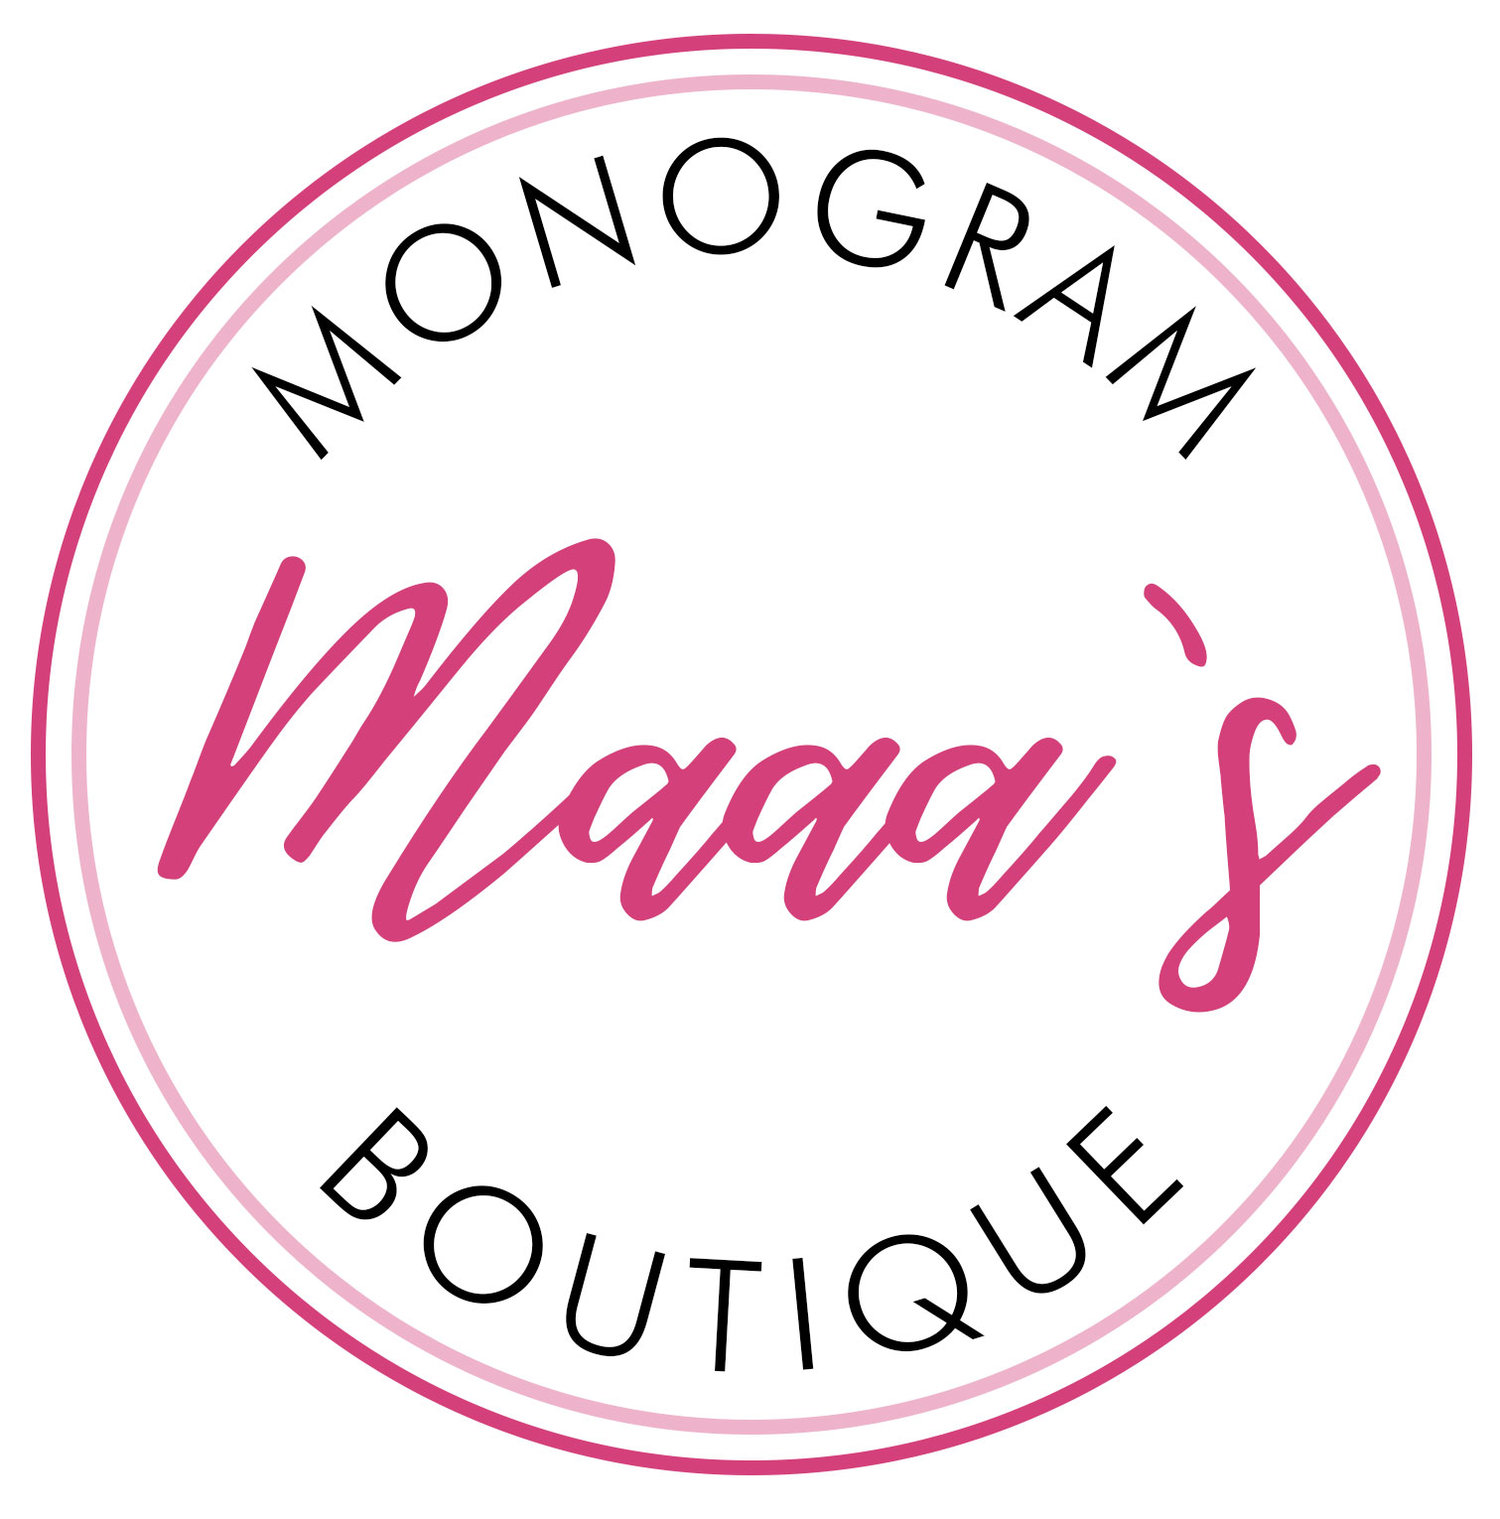 Maaa's Monogram Boutique